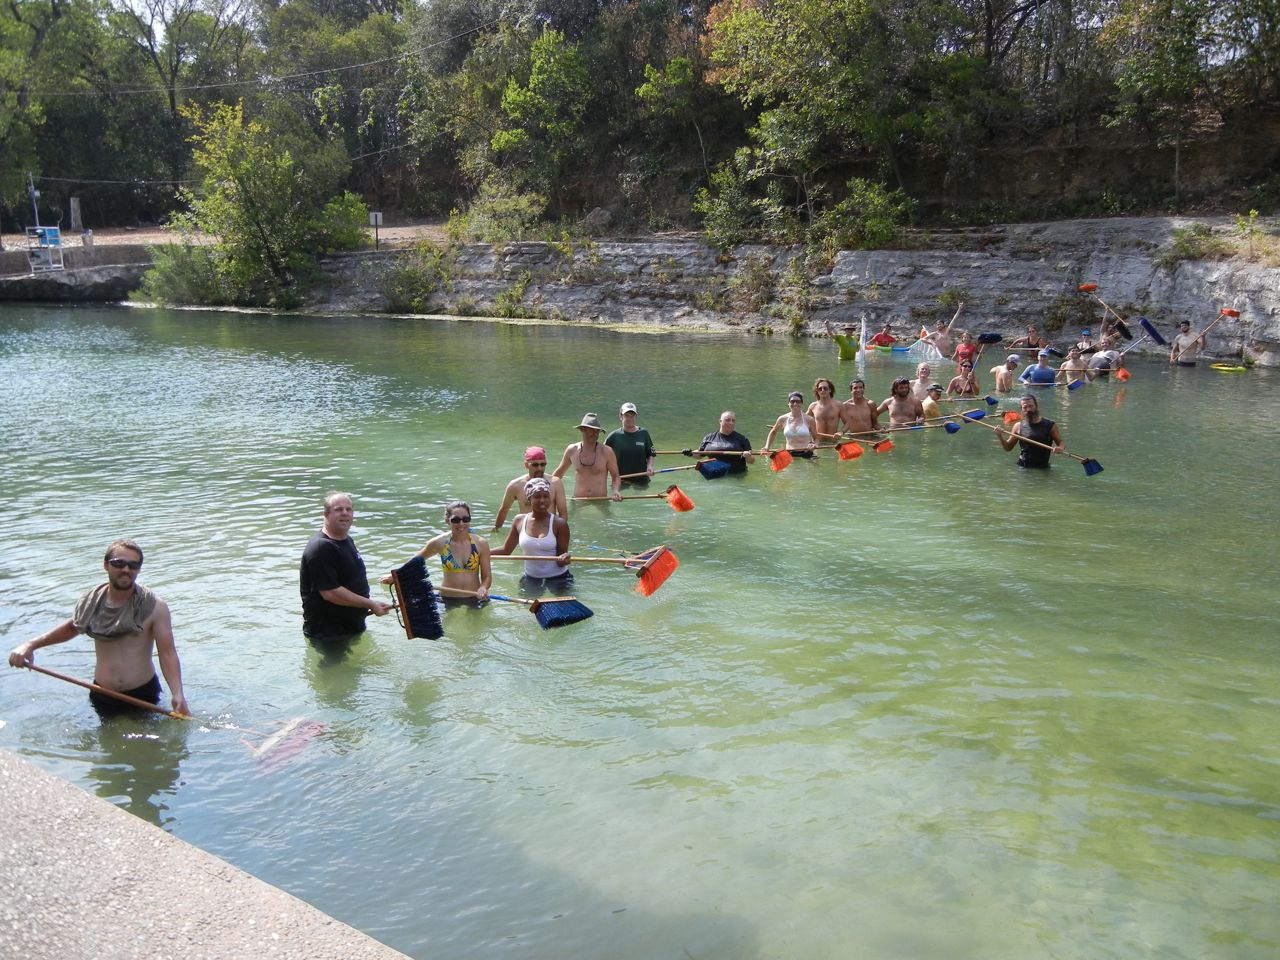 Friends Of Barton Springs Pool Blog Archive Private Pool Party At Barton Springs And You